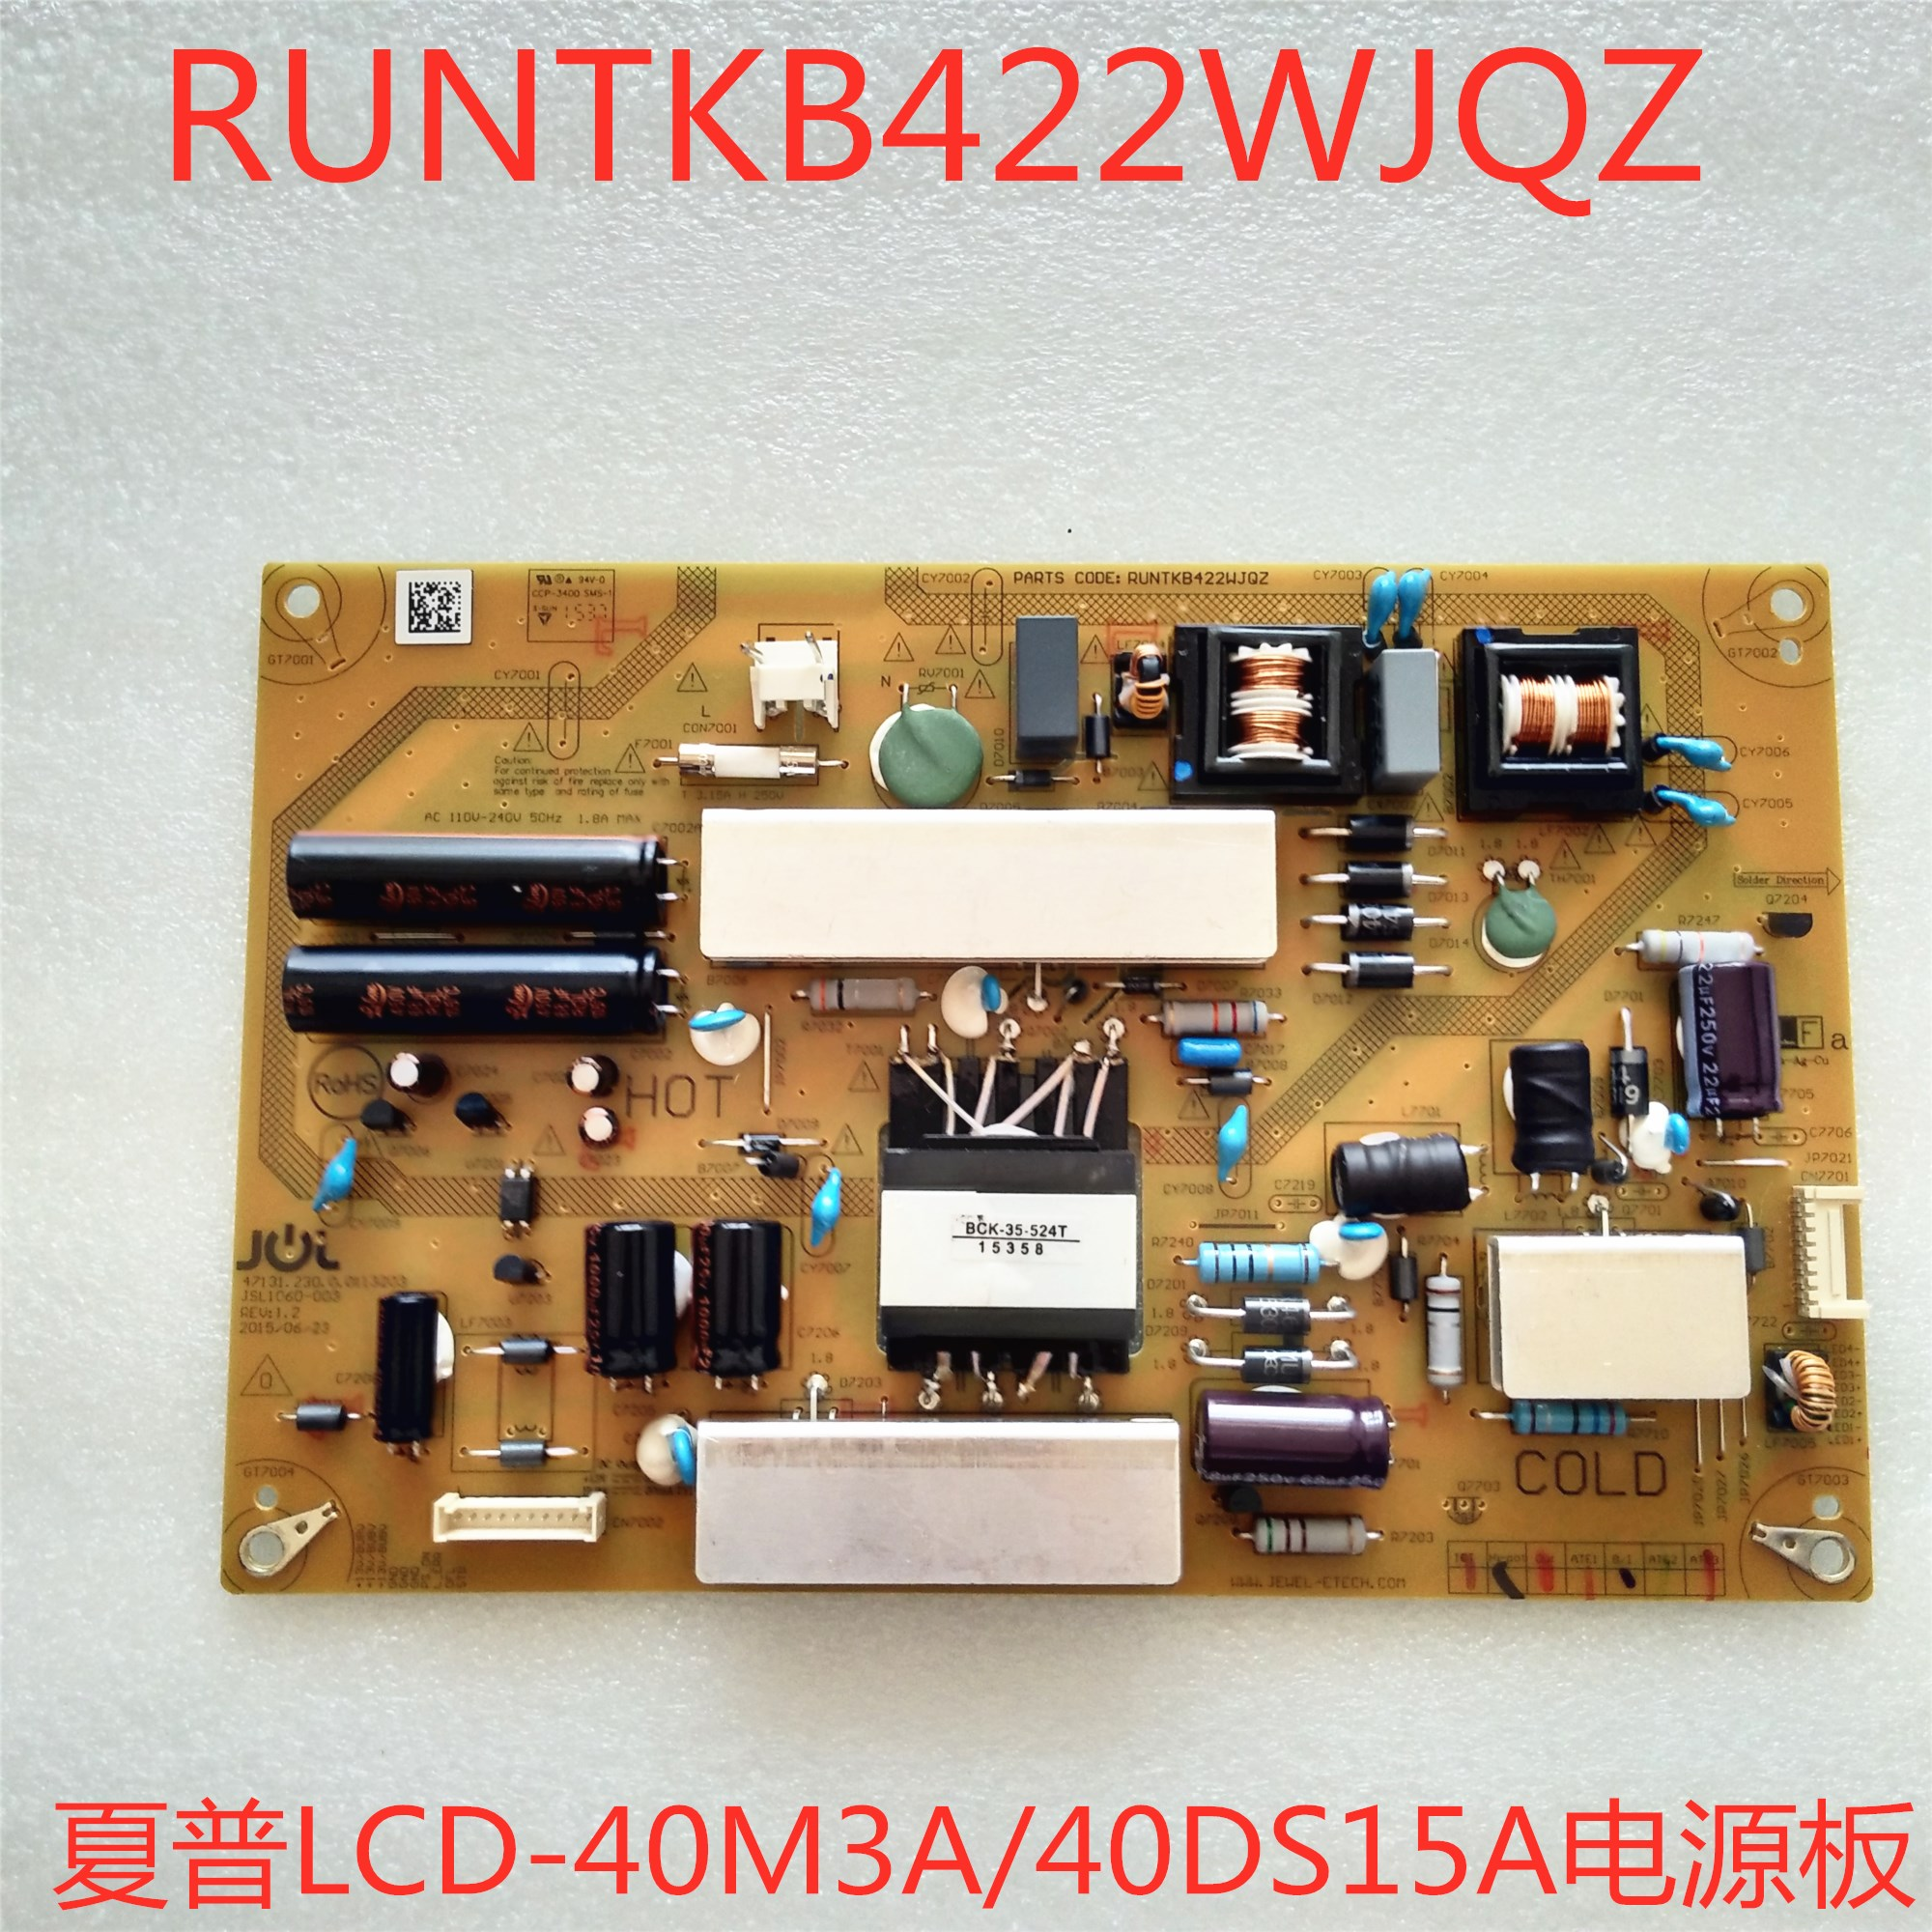 The original 40M3A 40MS16A 40DS15A power board RUNTKB422WJQZ was tested well